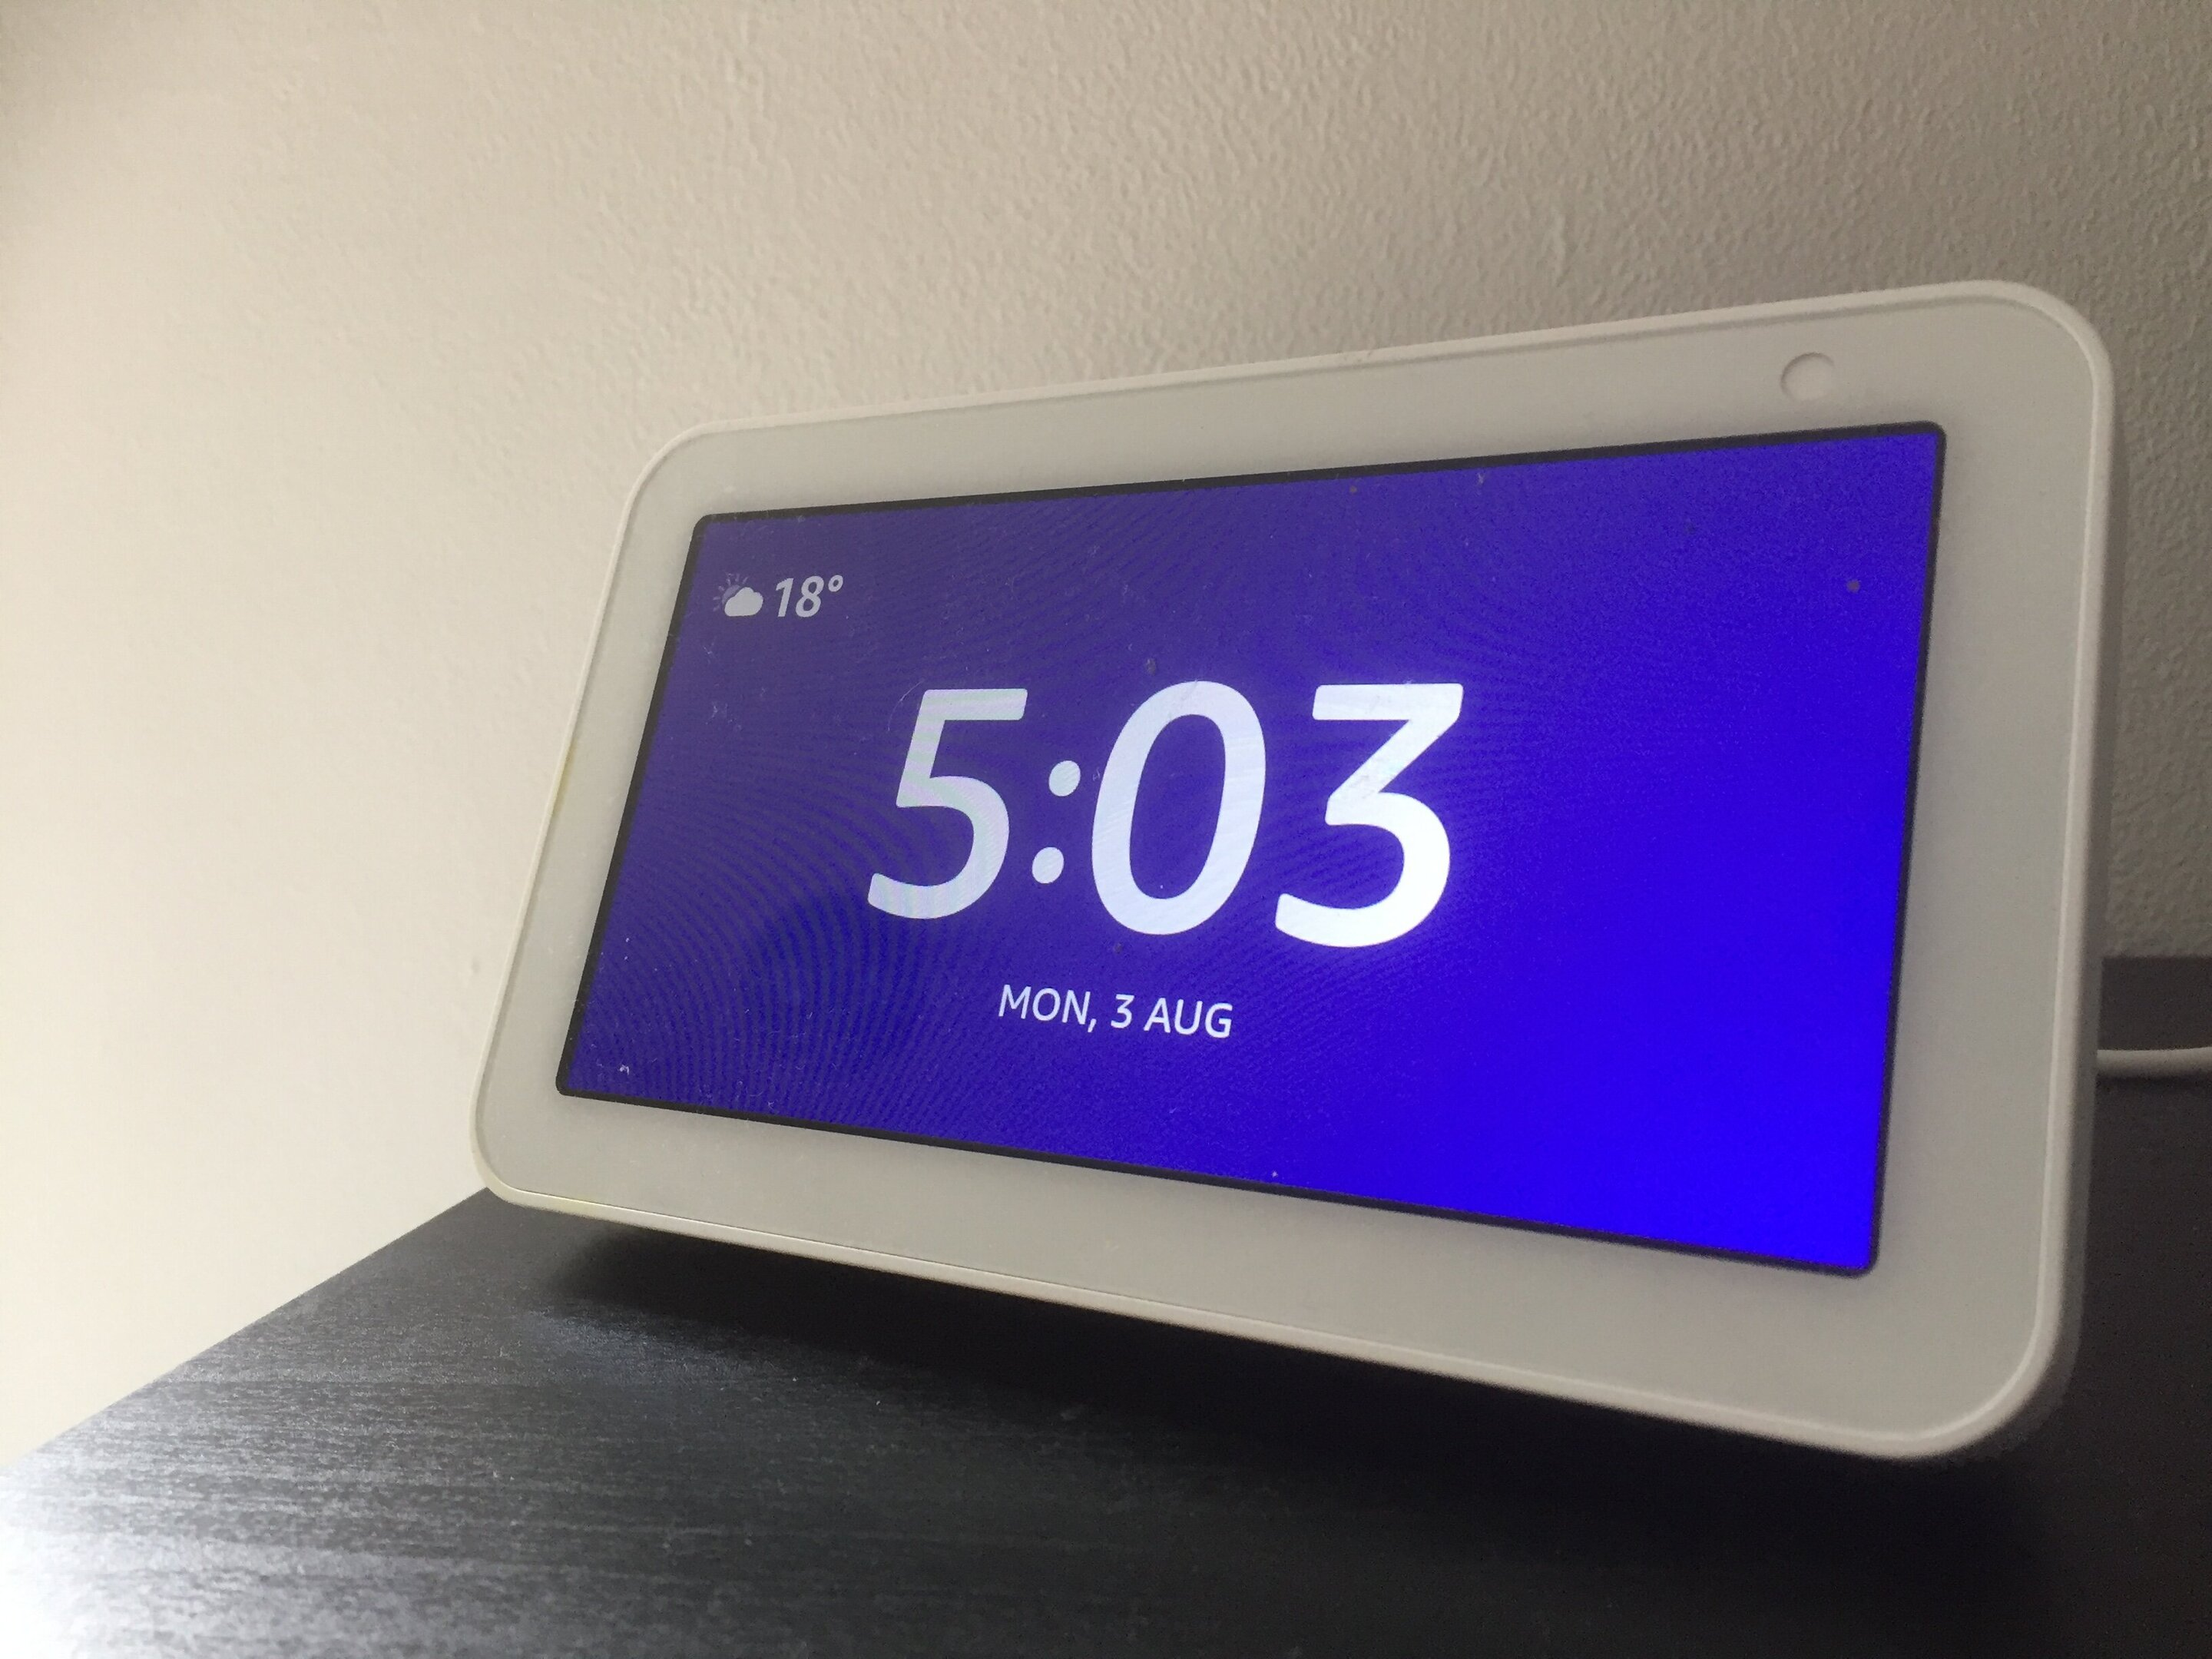 Consumers don't fully trust smart home technologies